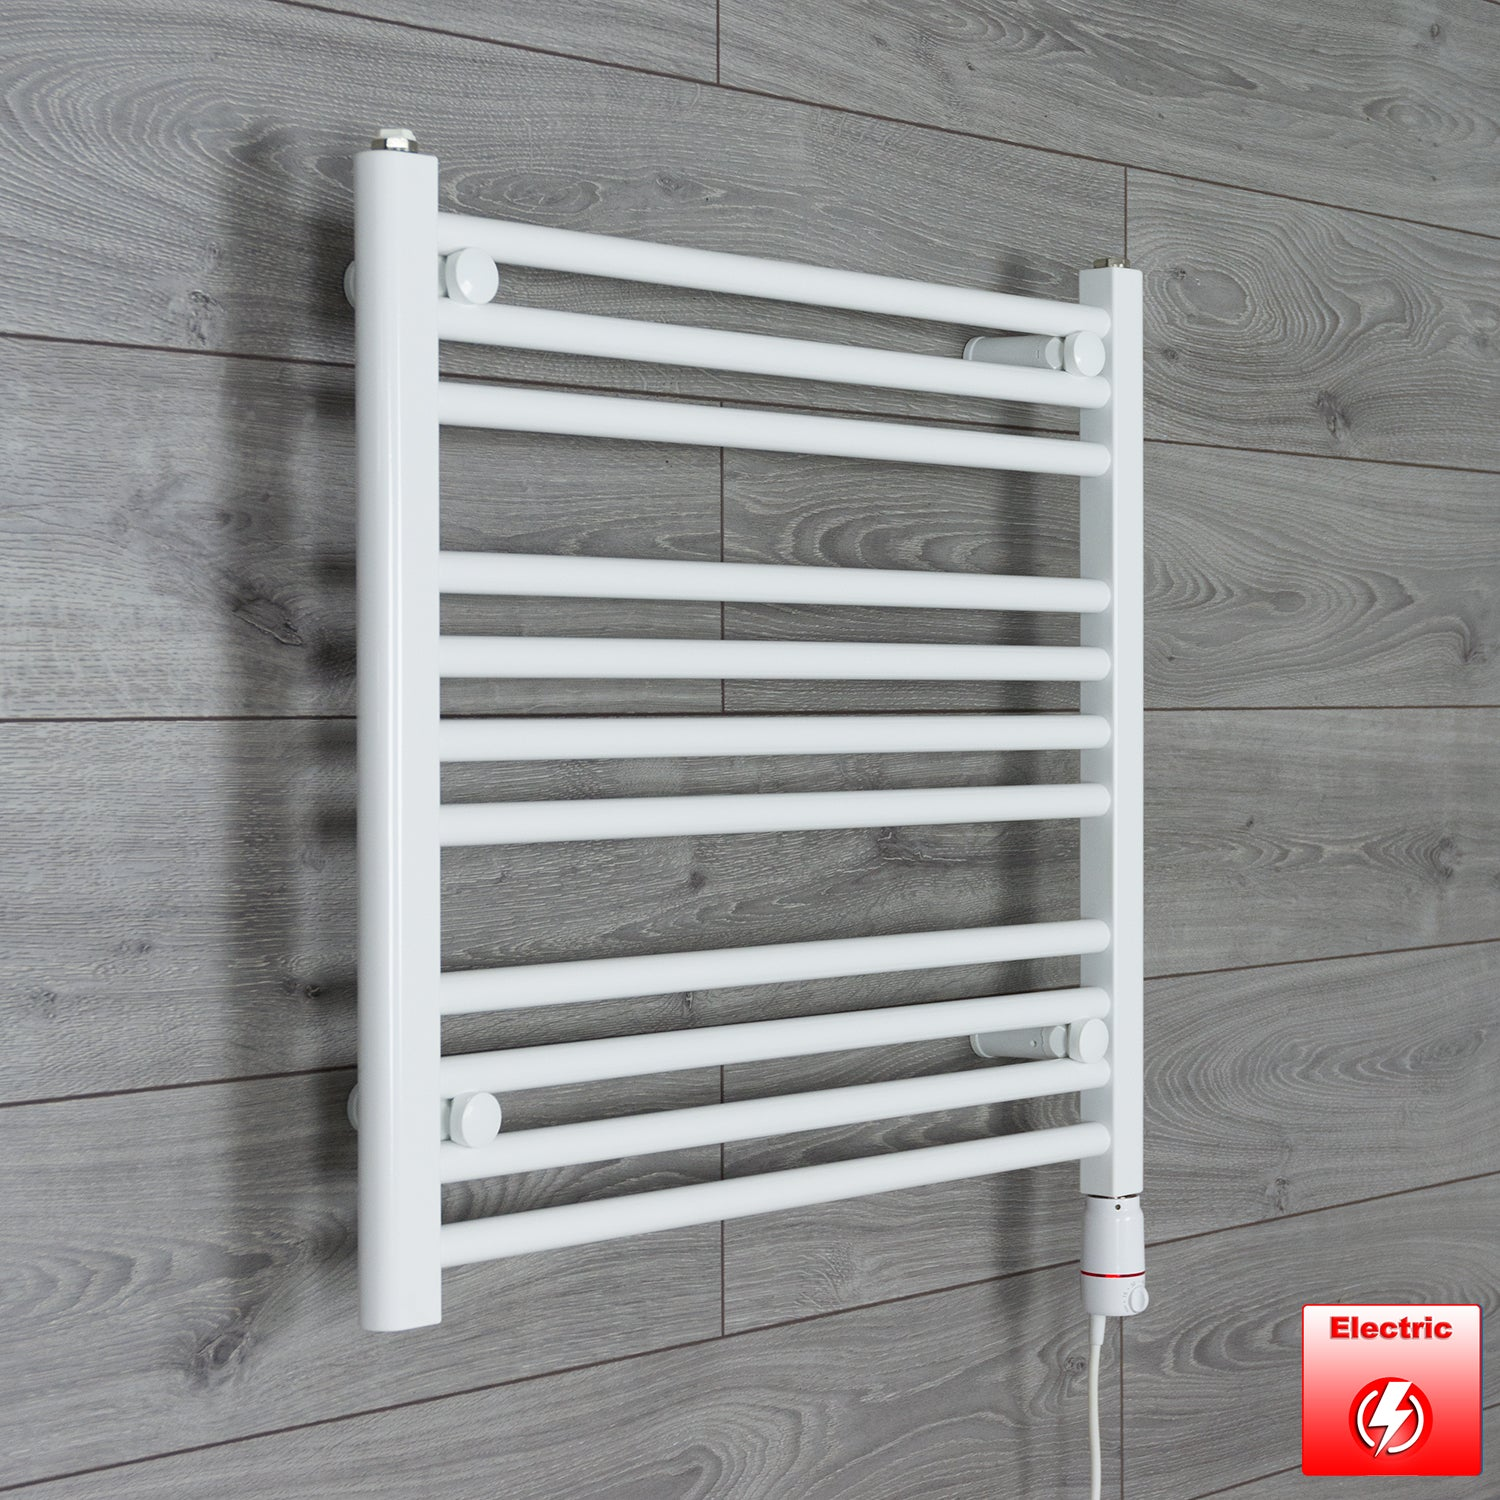 700mm Wide 600mm High Pre-Filled White Electric Towel Rail Radiator With Thermostatic GT Element